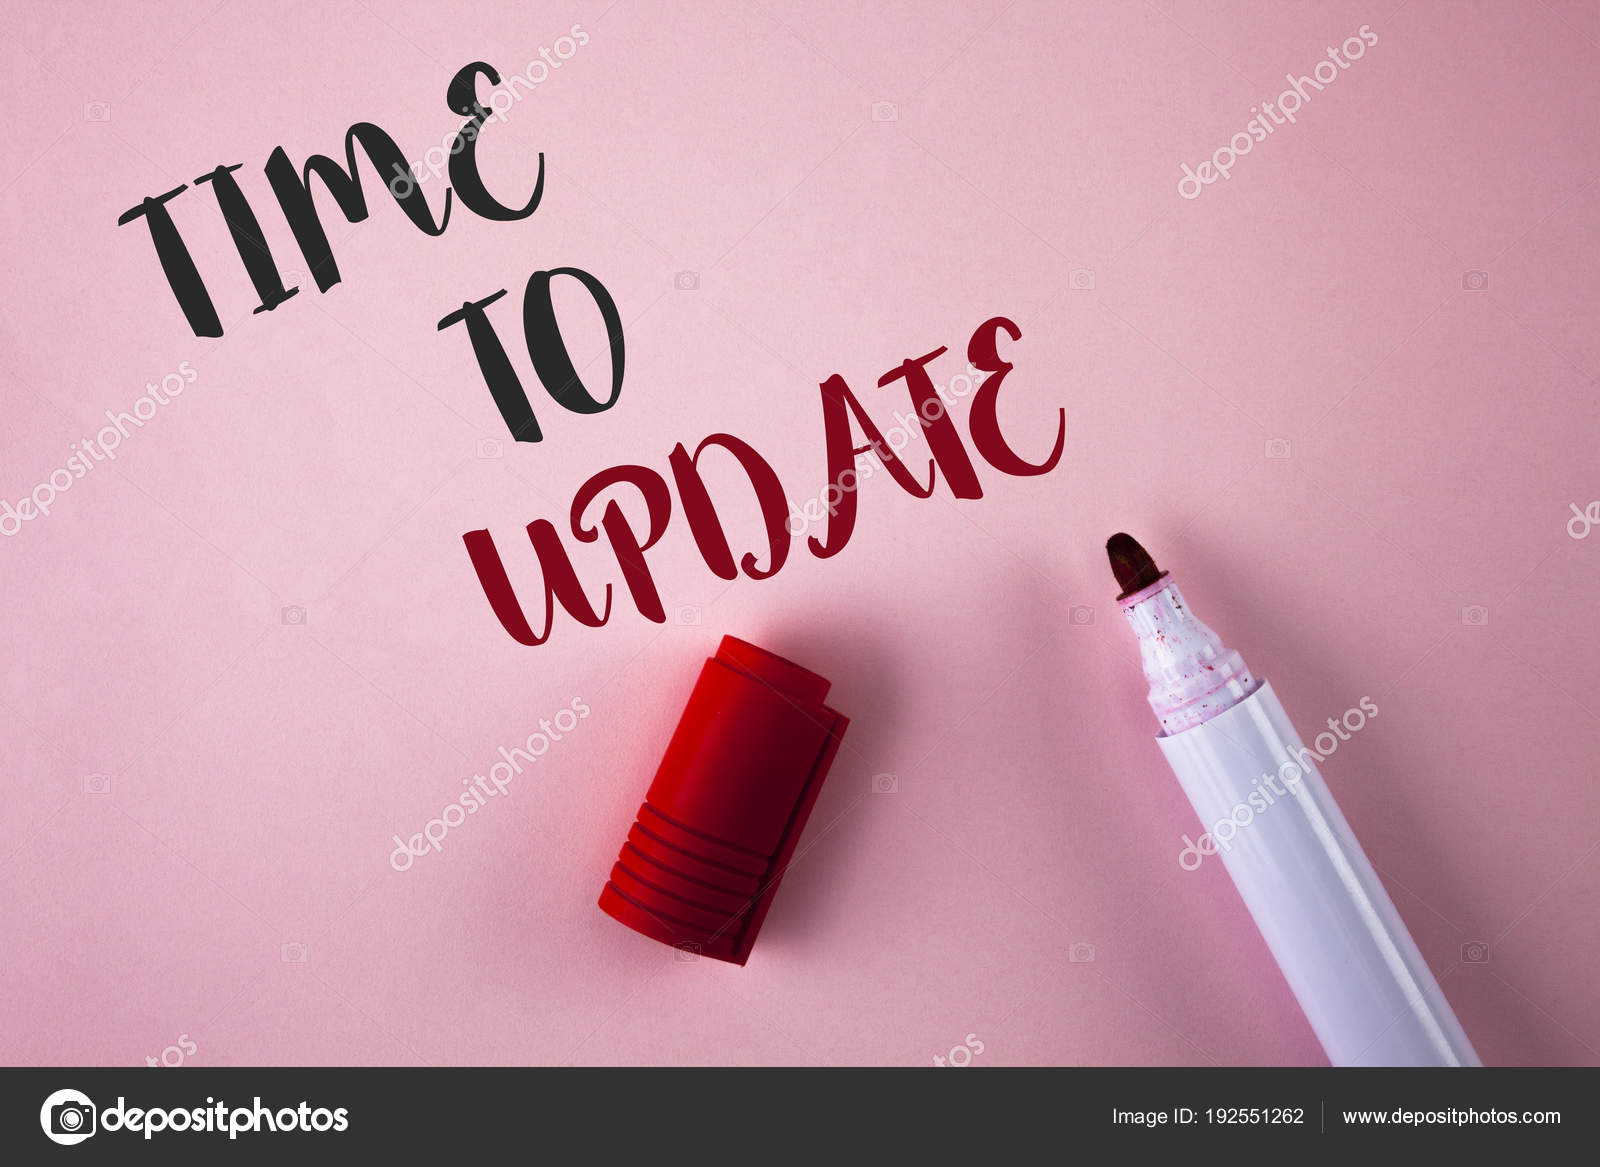 Image result for time to update pink